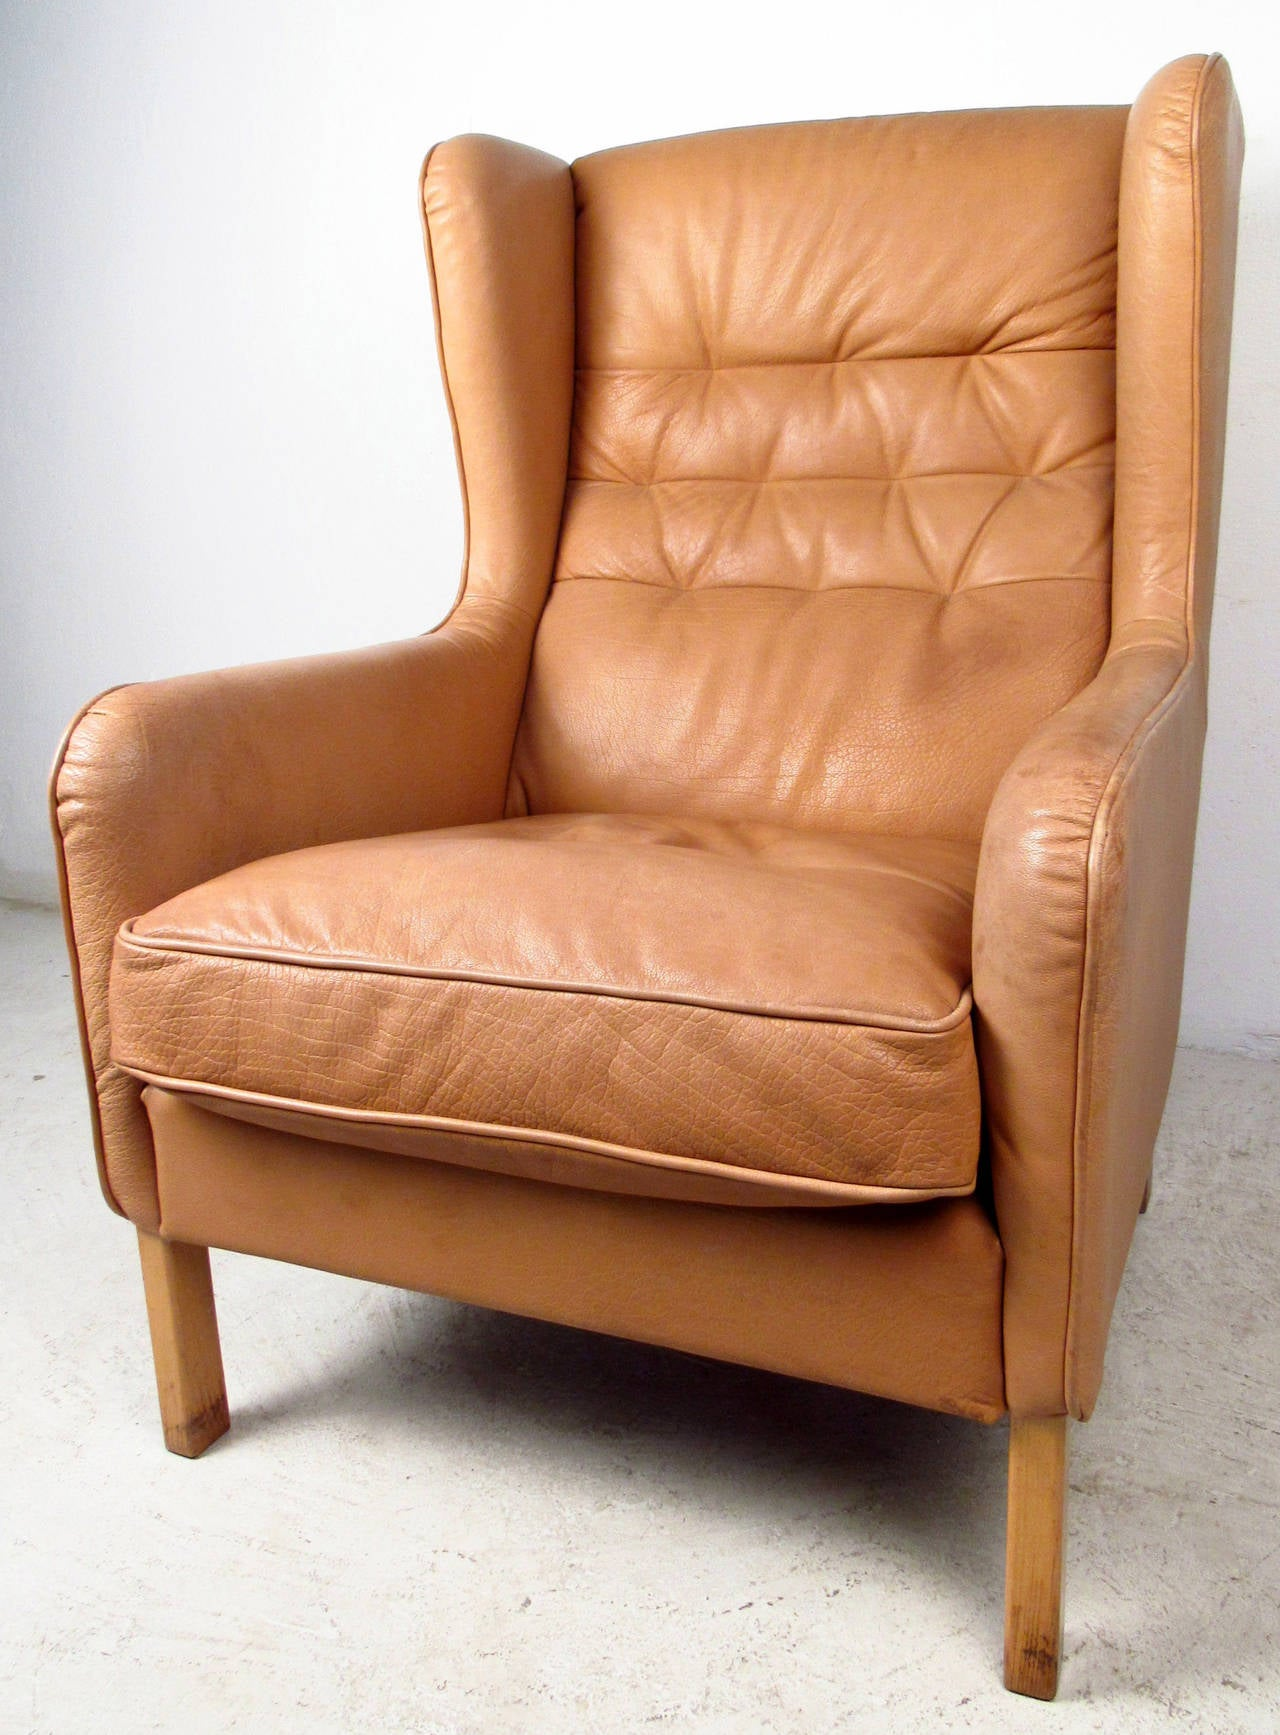 Mid-20th Century Mid-Century Modern Tufted Leather Wingback Lounge Chair For Sale